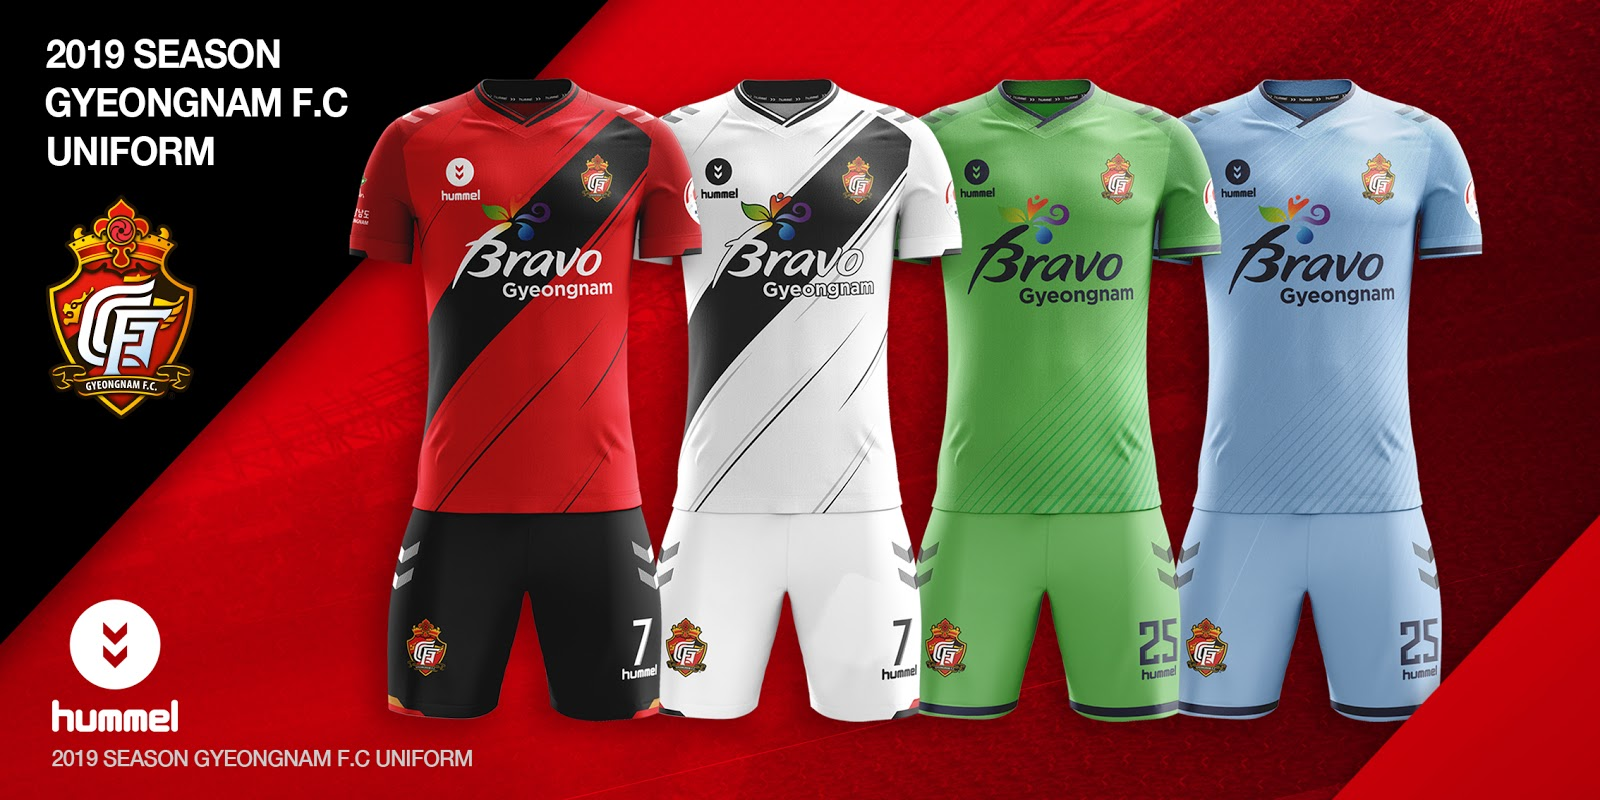 f4fb327f5eb An ongoing thread of the K League 1 and K League 2 kits as they're released.